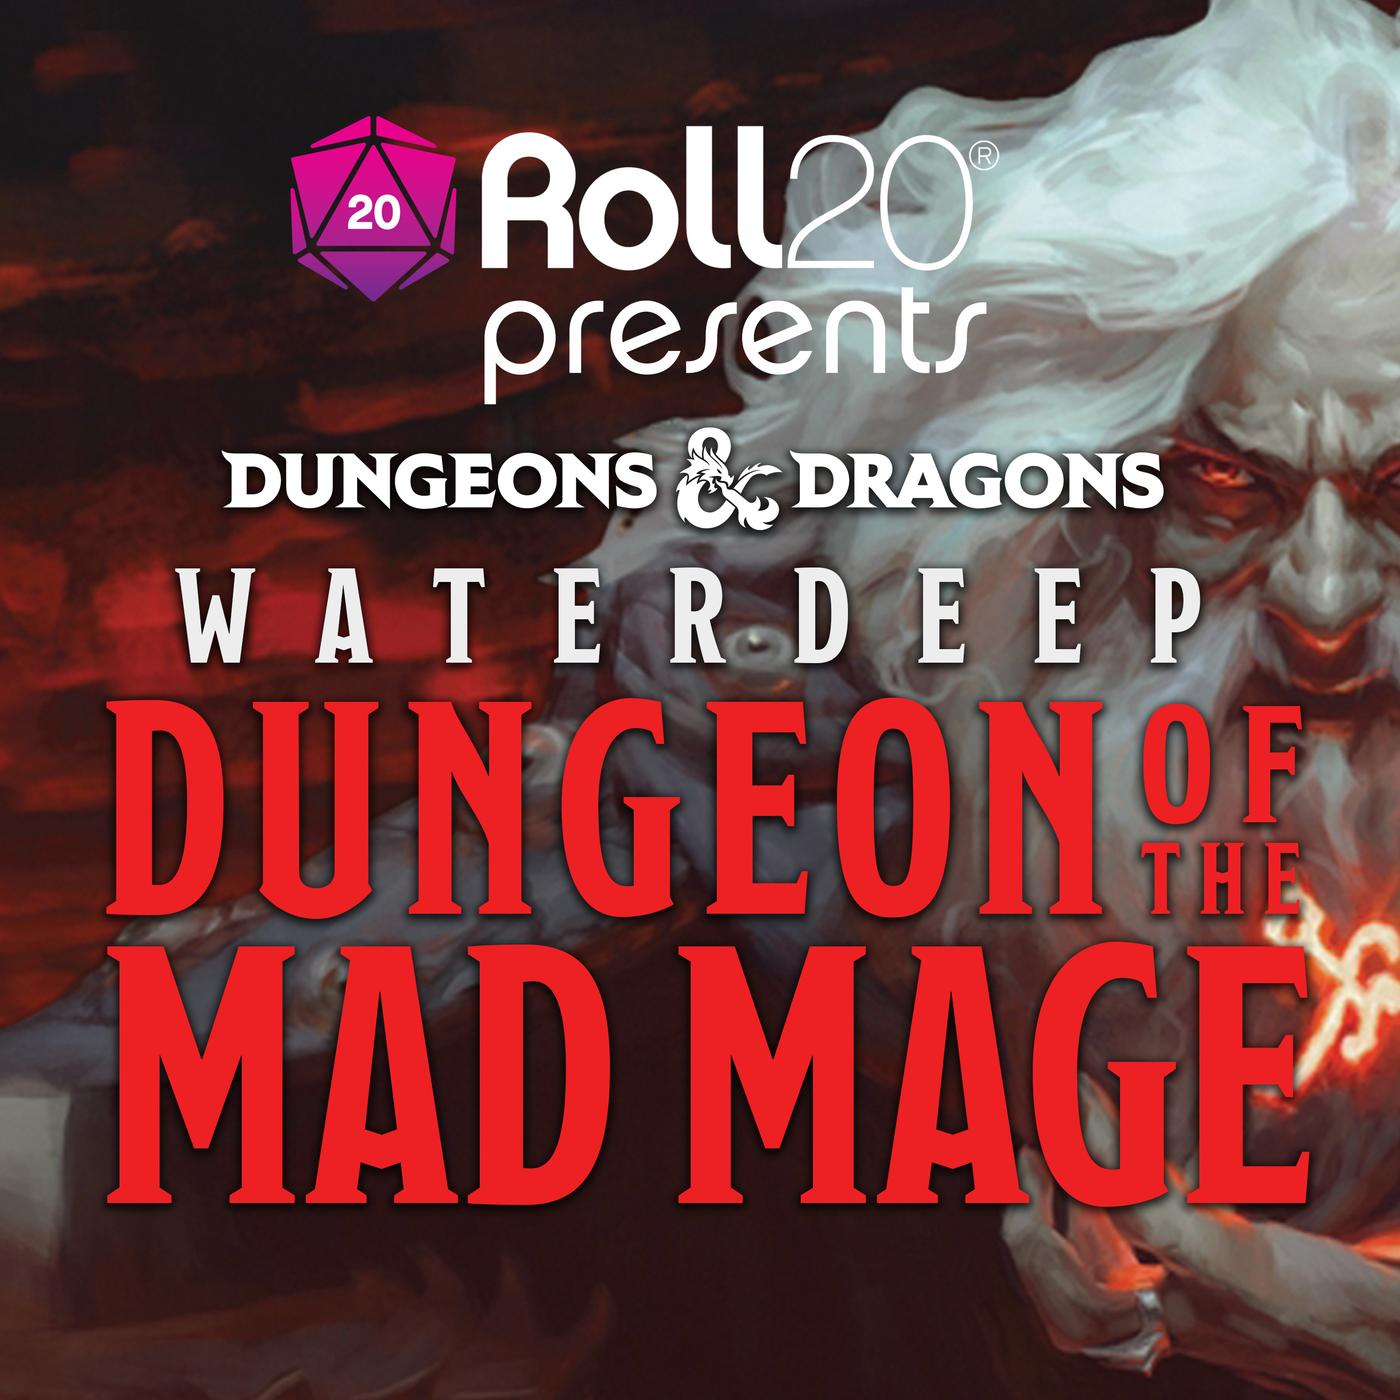 Roll20 Presents: Dungeon of the Mad Mage (podcast